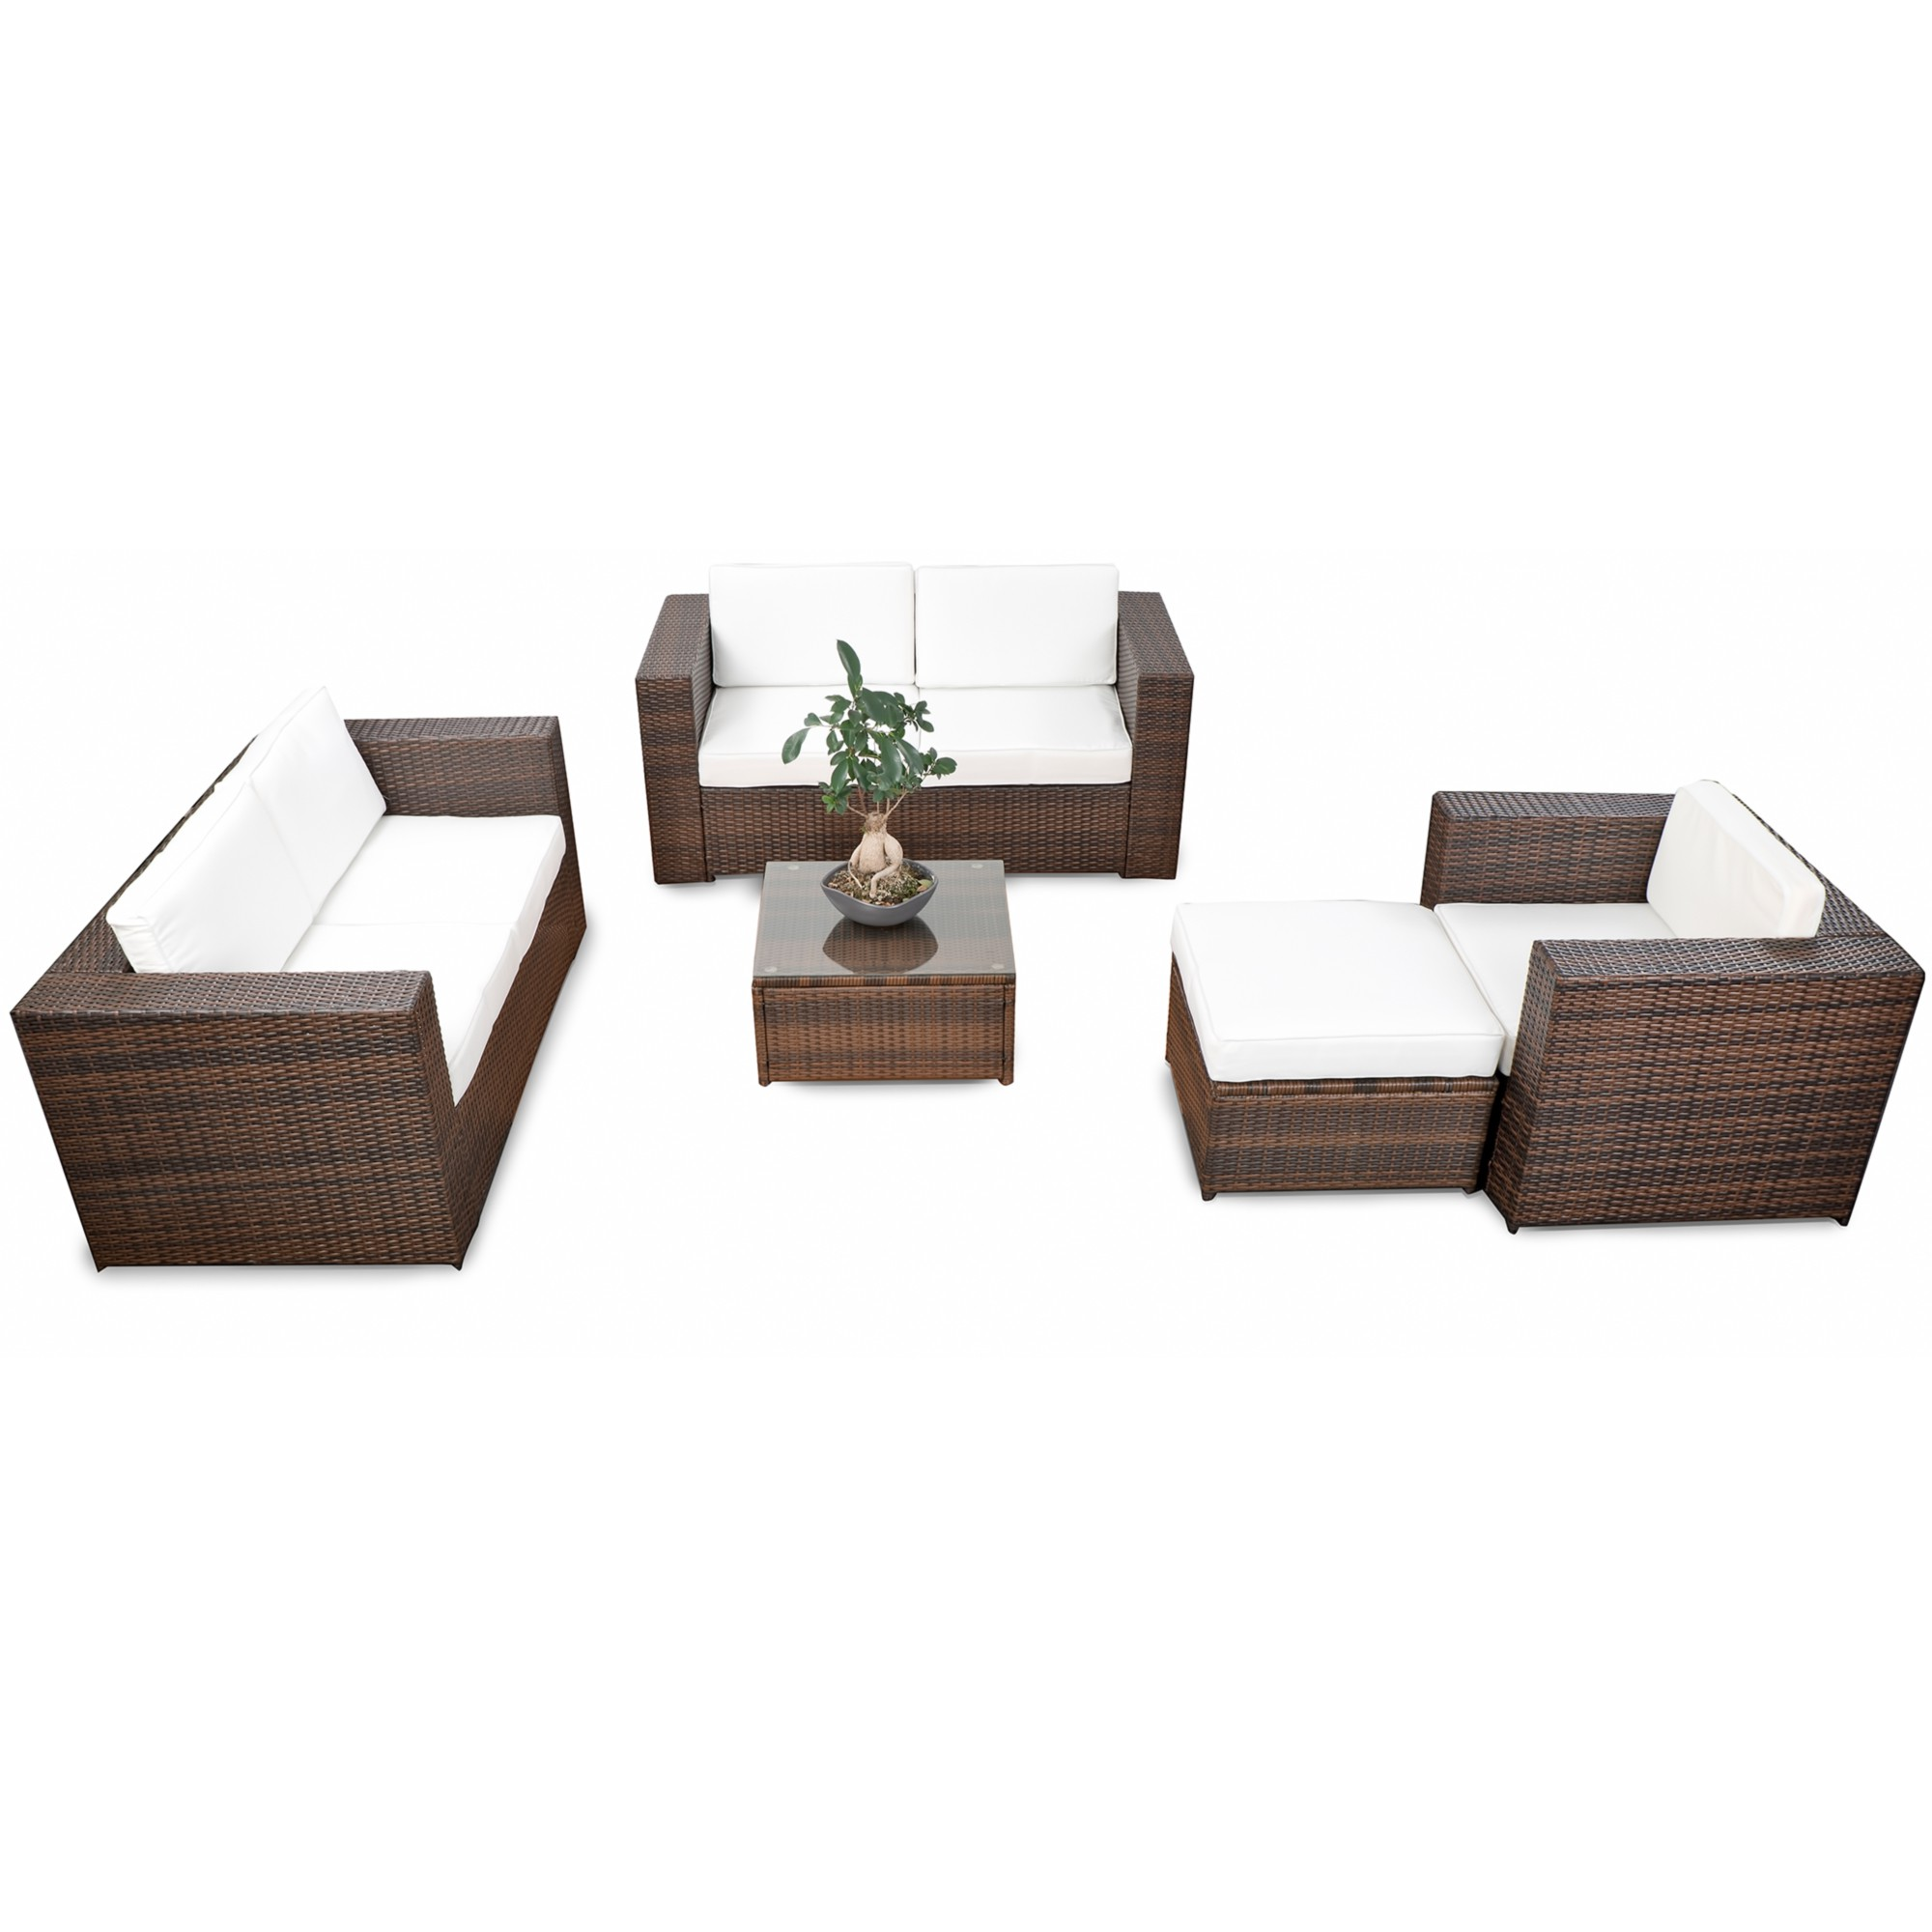 rattan gartenm bel lounge g nstig lounge gartenm bel rattan kaufen. Black Bedroom Furniture Sets. Home Design Ideas